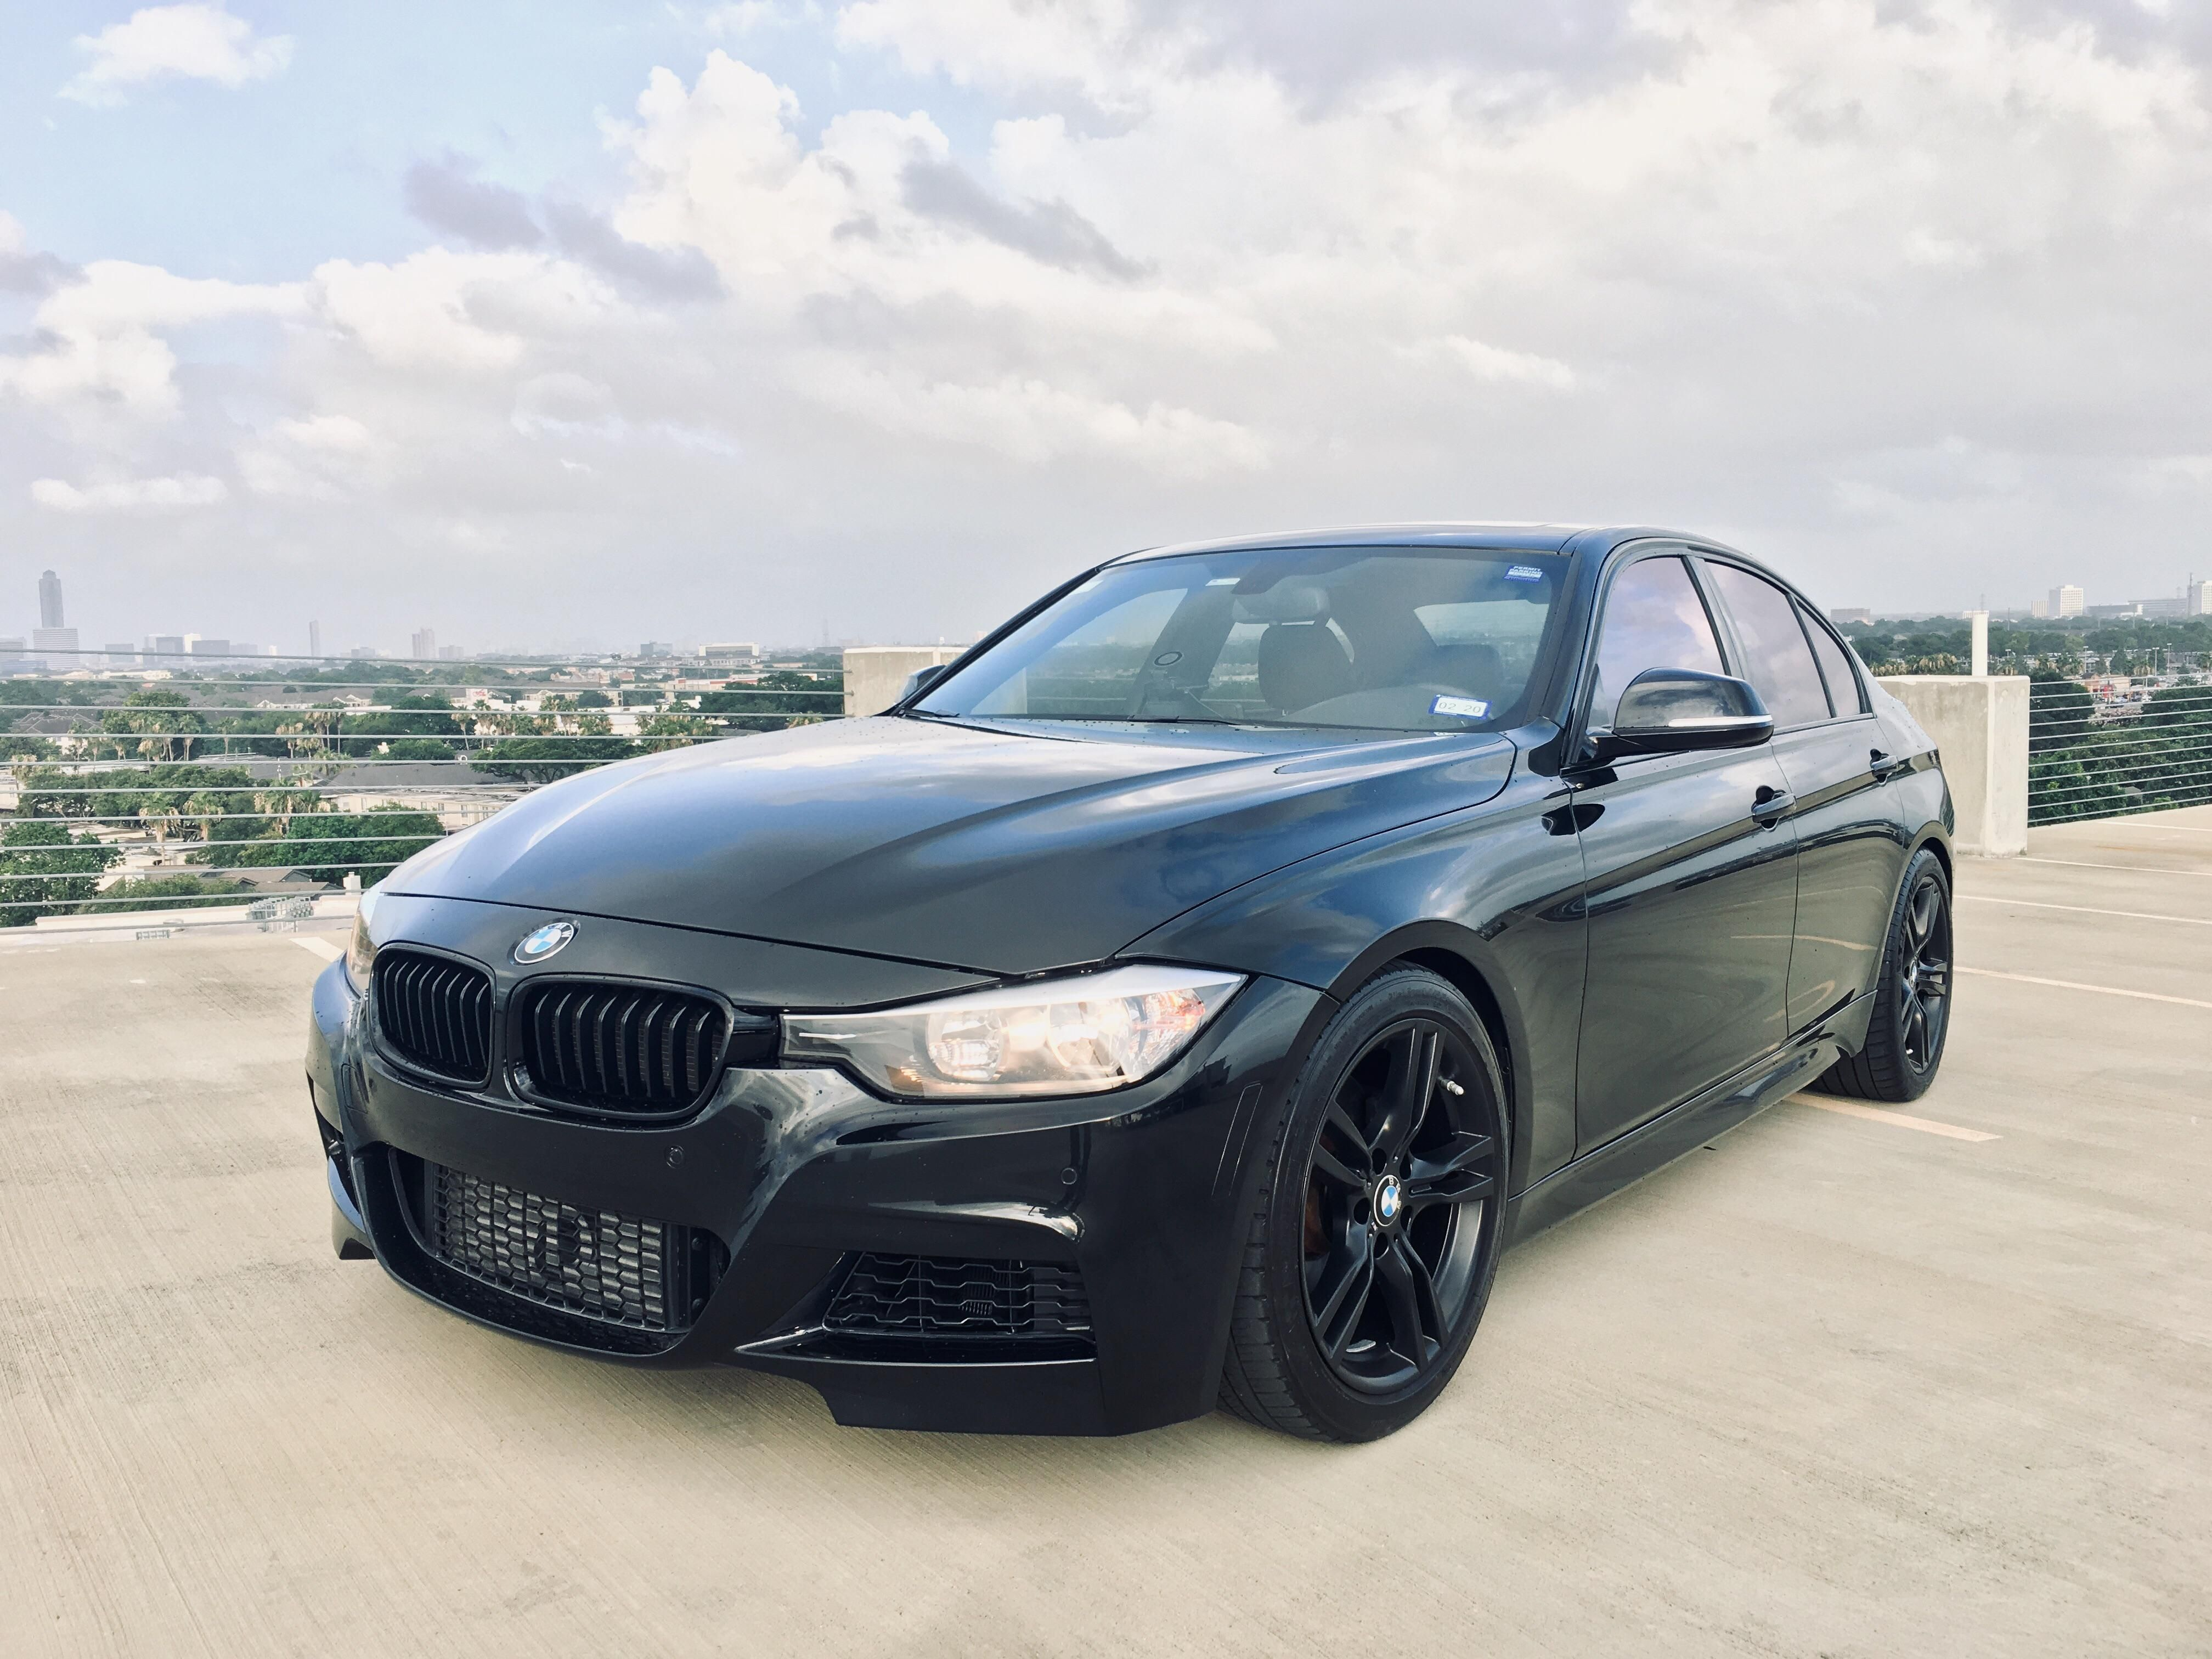 What Do You Guys Think About The 400m In Satin Black On A Bsm F30 Bmw Black Wheels Bmw Wagon